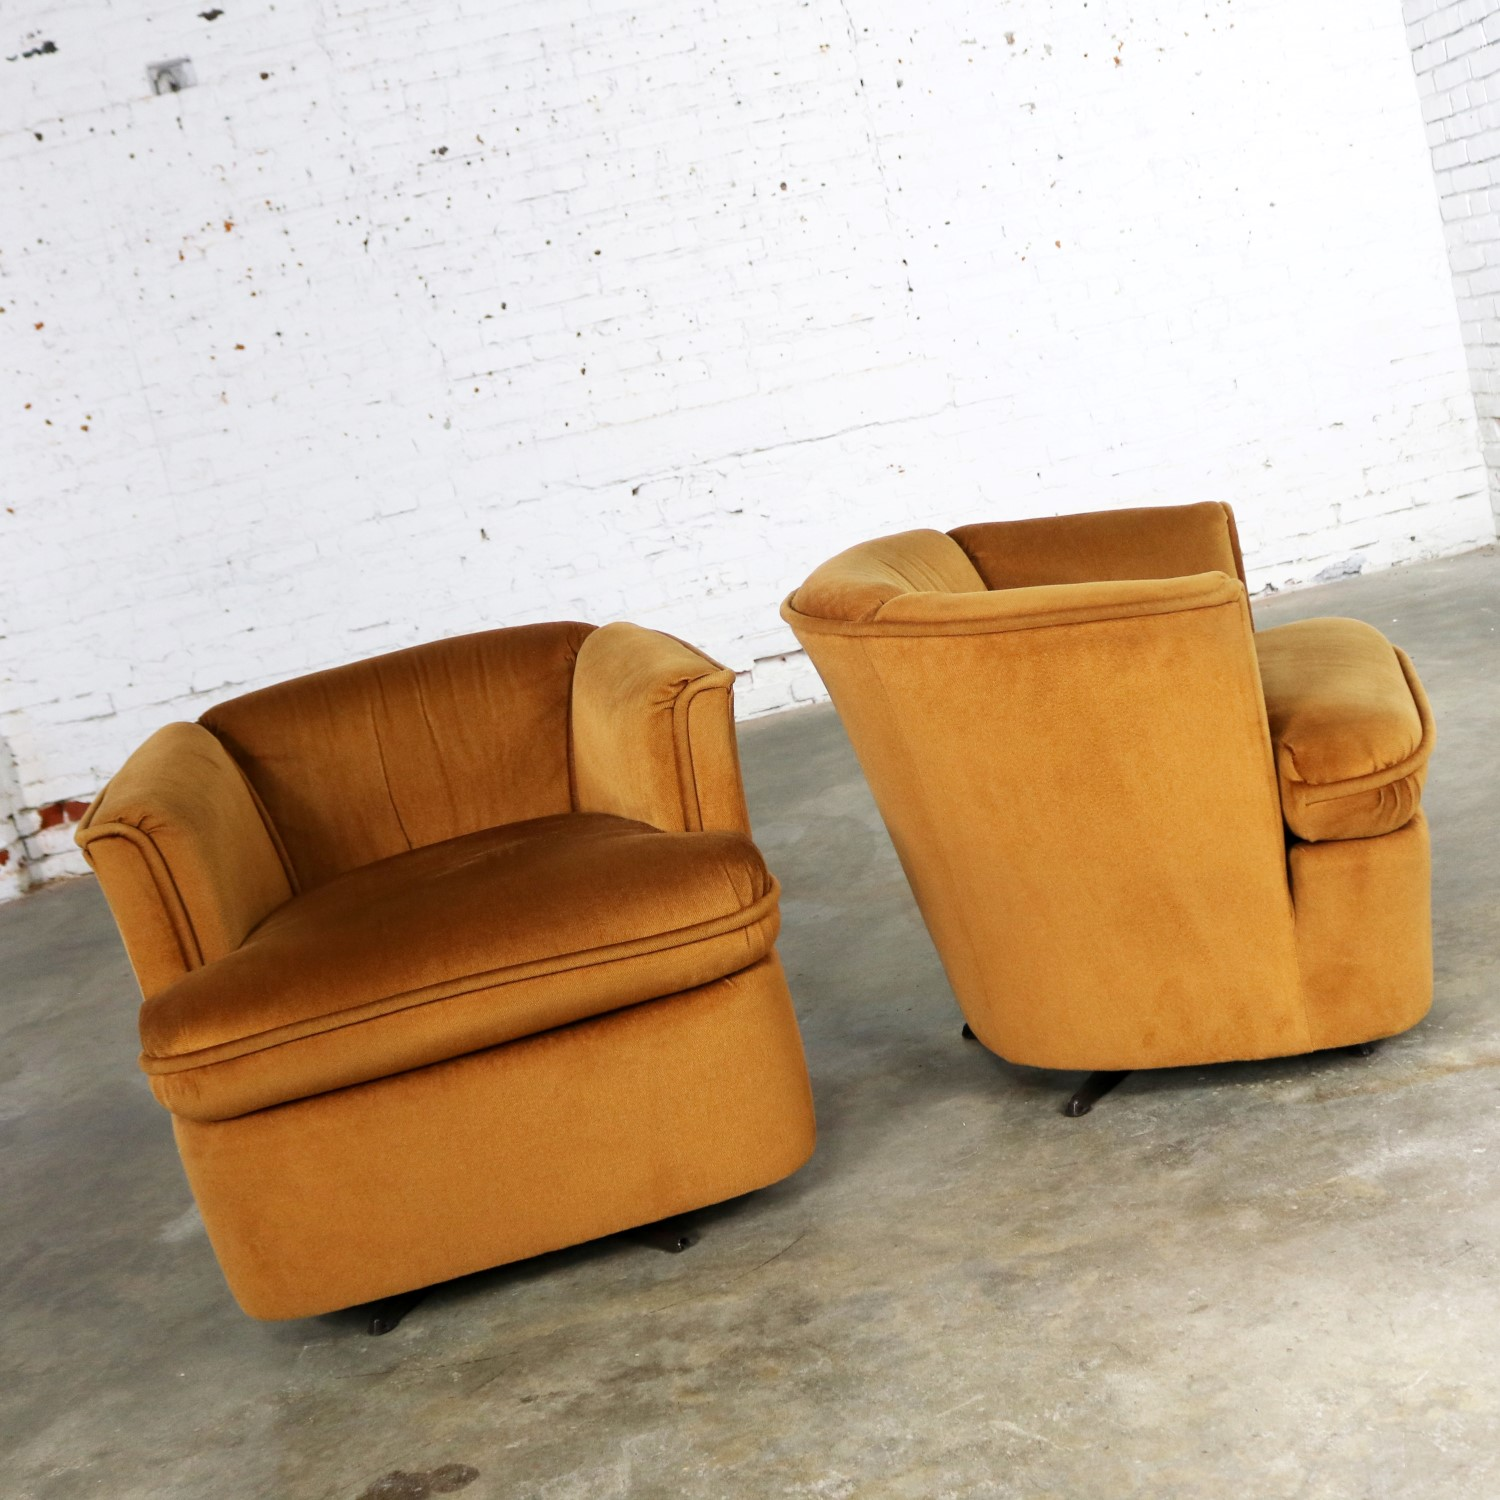 Stupendous Pair Of Drexel Swivel Barrel Shaped Club Chairs In Burnt Squirreltailoven Fun Painted Chair Ideas Images Squirreltailovenorg